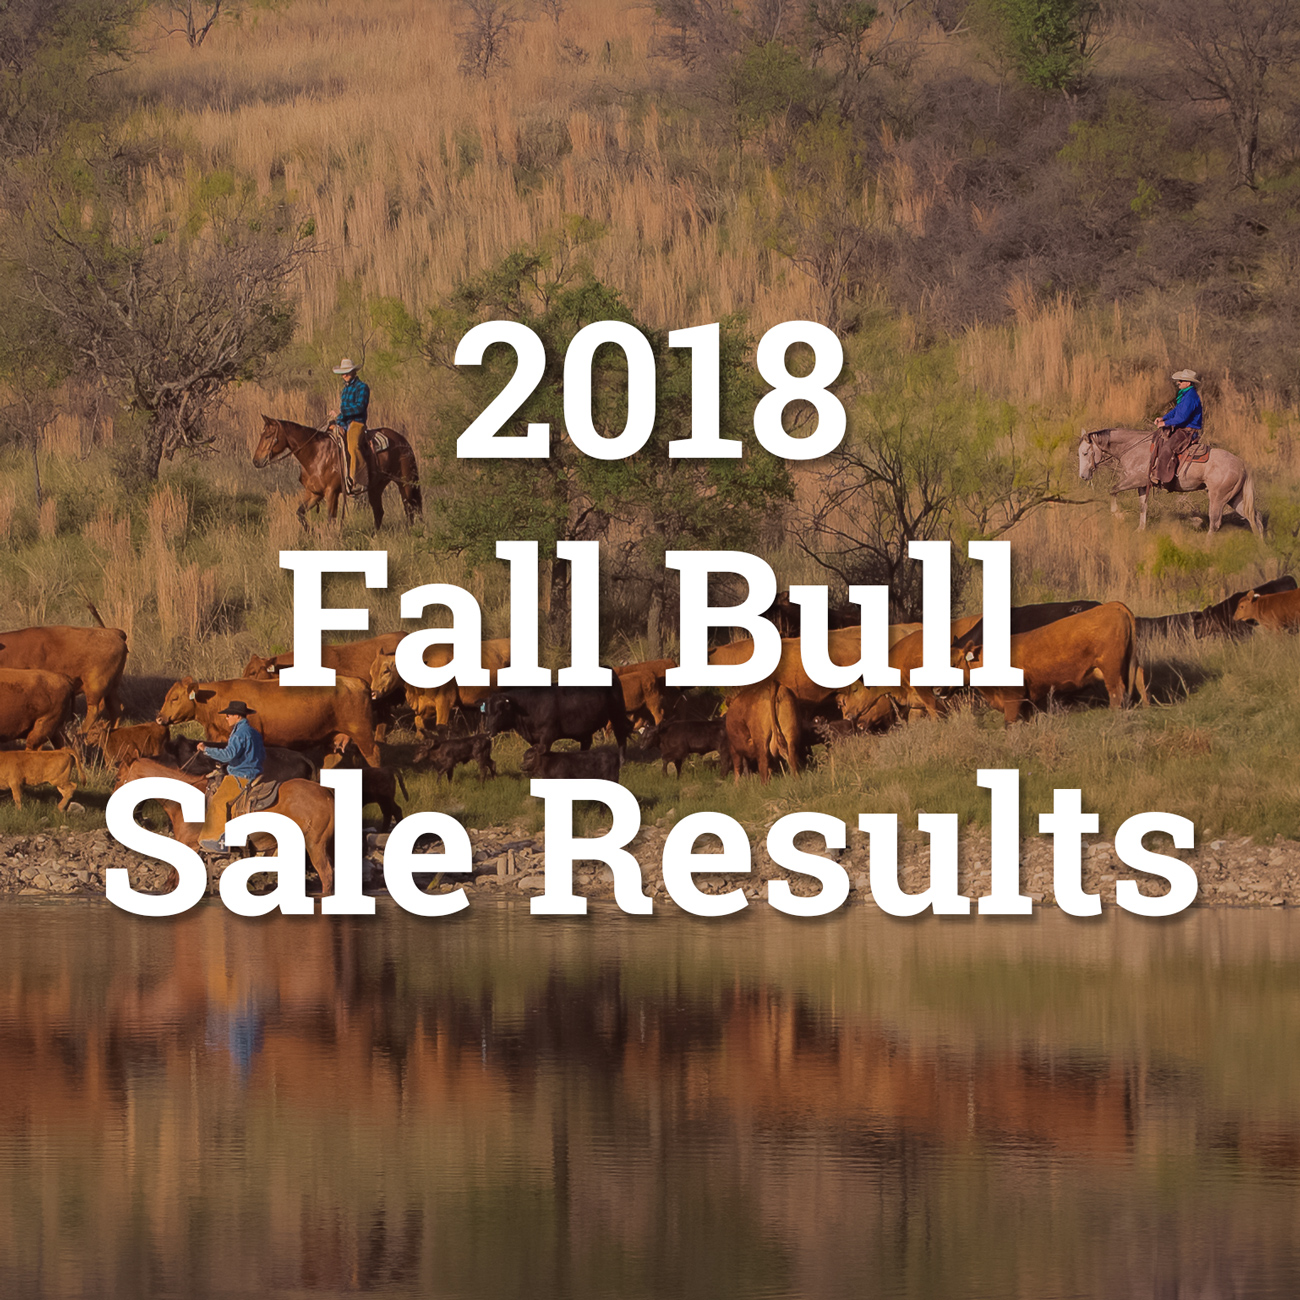 fall-2018-sale-results-button.jpg